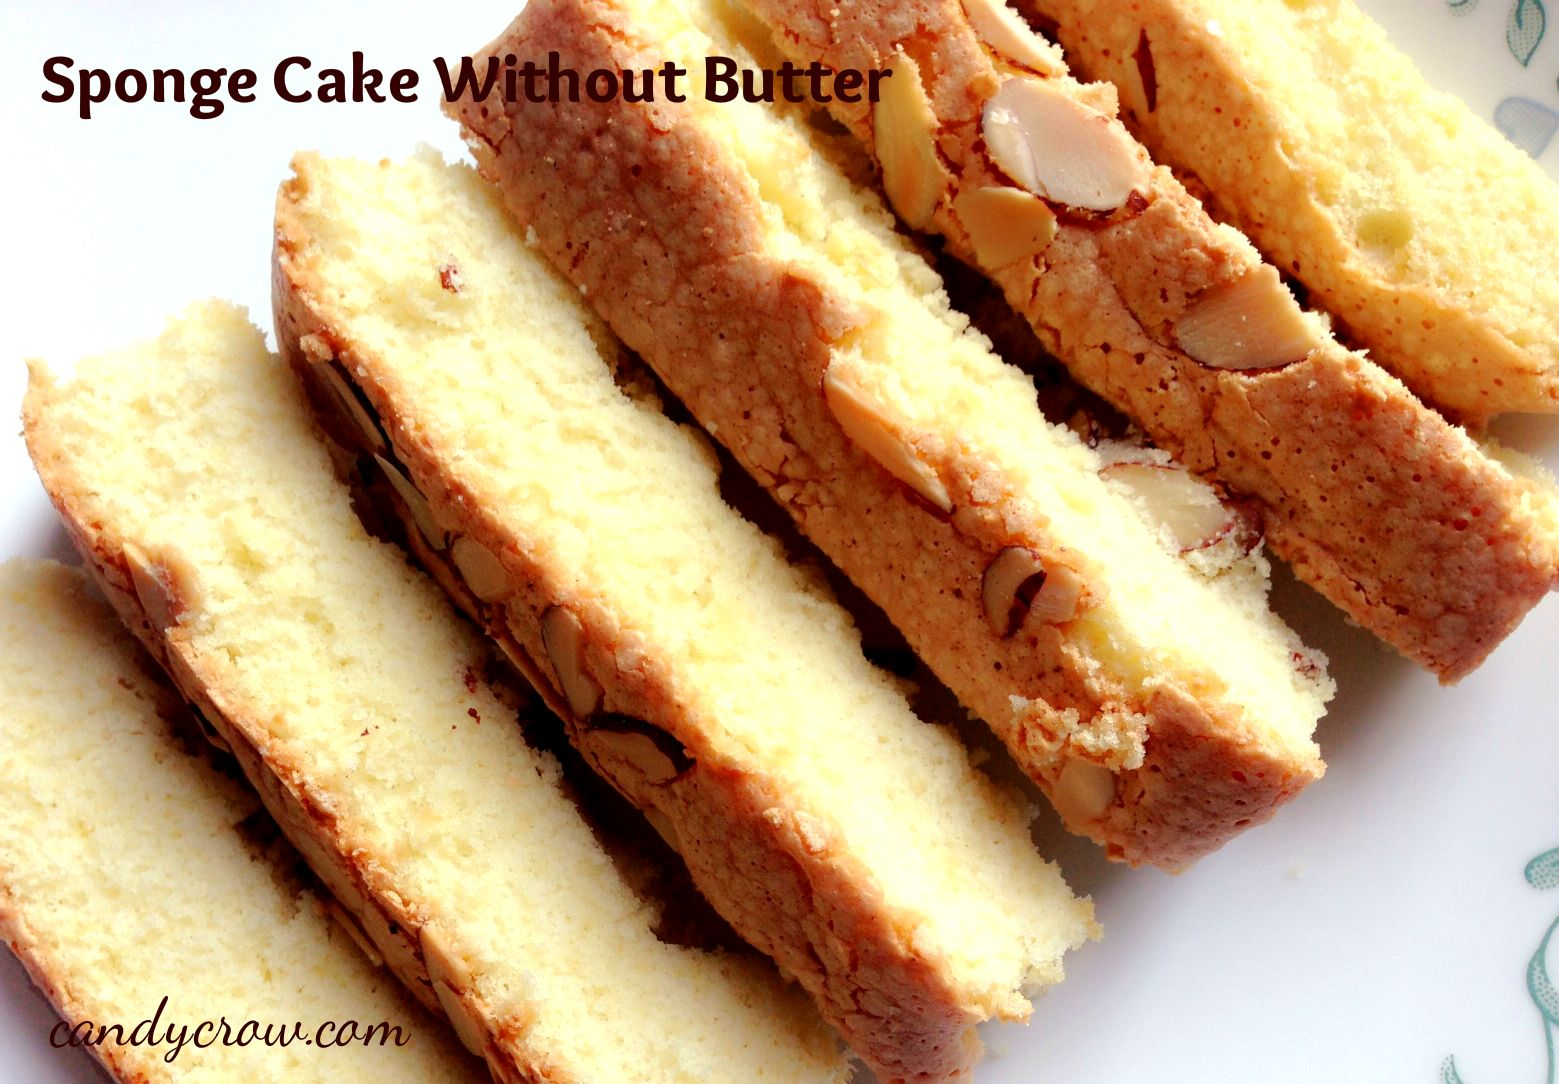 How To Bake Sponge Cake Without Butter